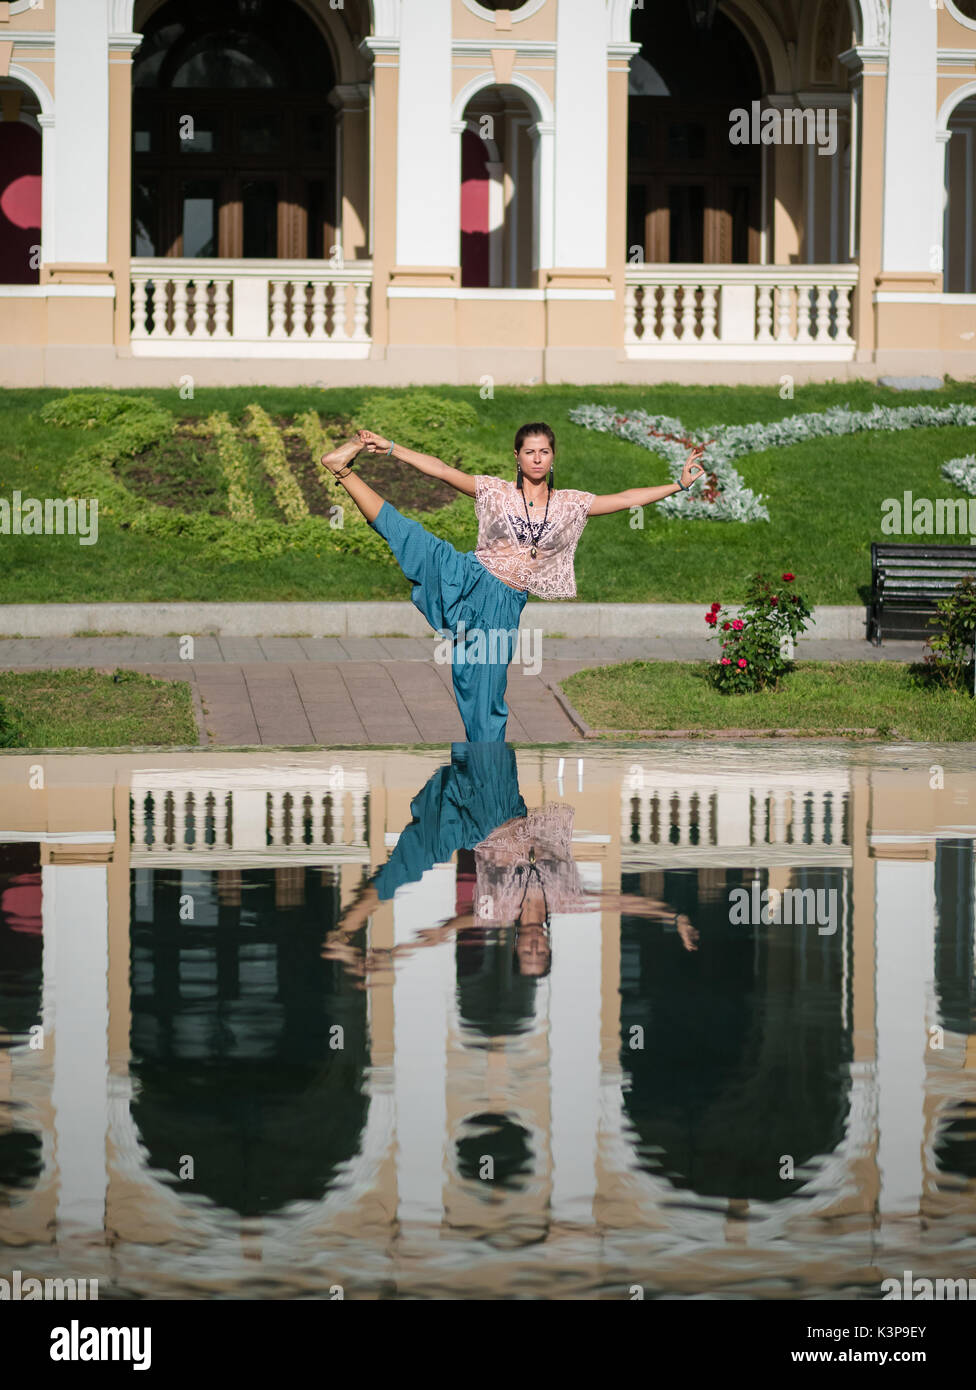 Reflection in the water of a sportive woman making stretching bent during workout in the city. Girl practicing yoga near fountain, beautiful architect - Stock Image